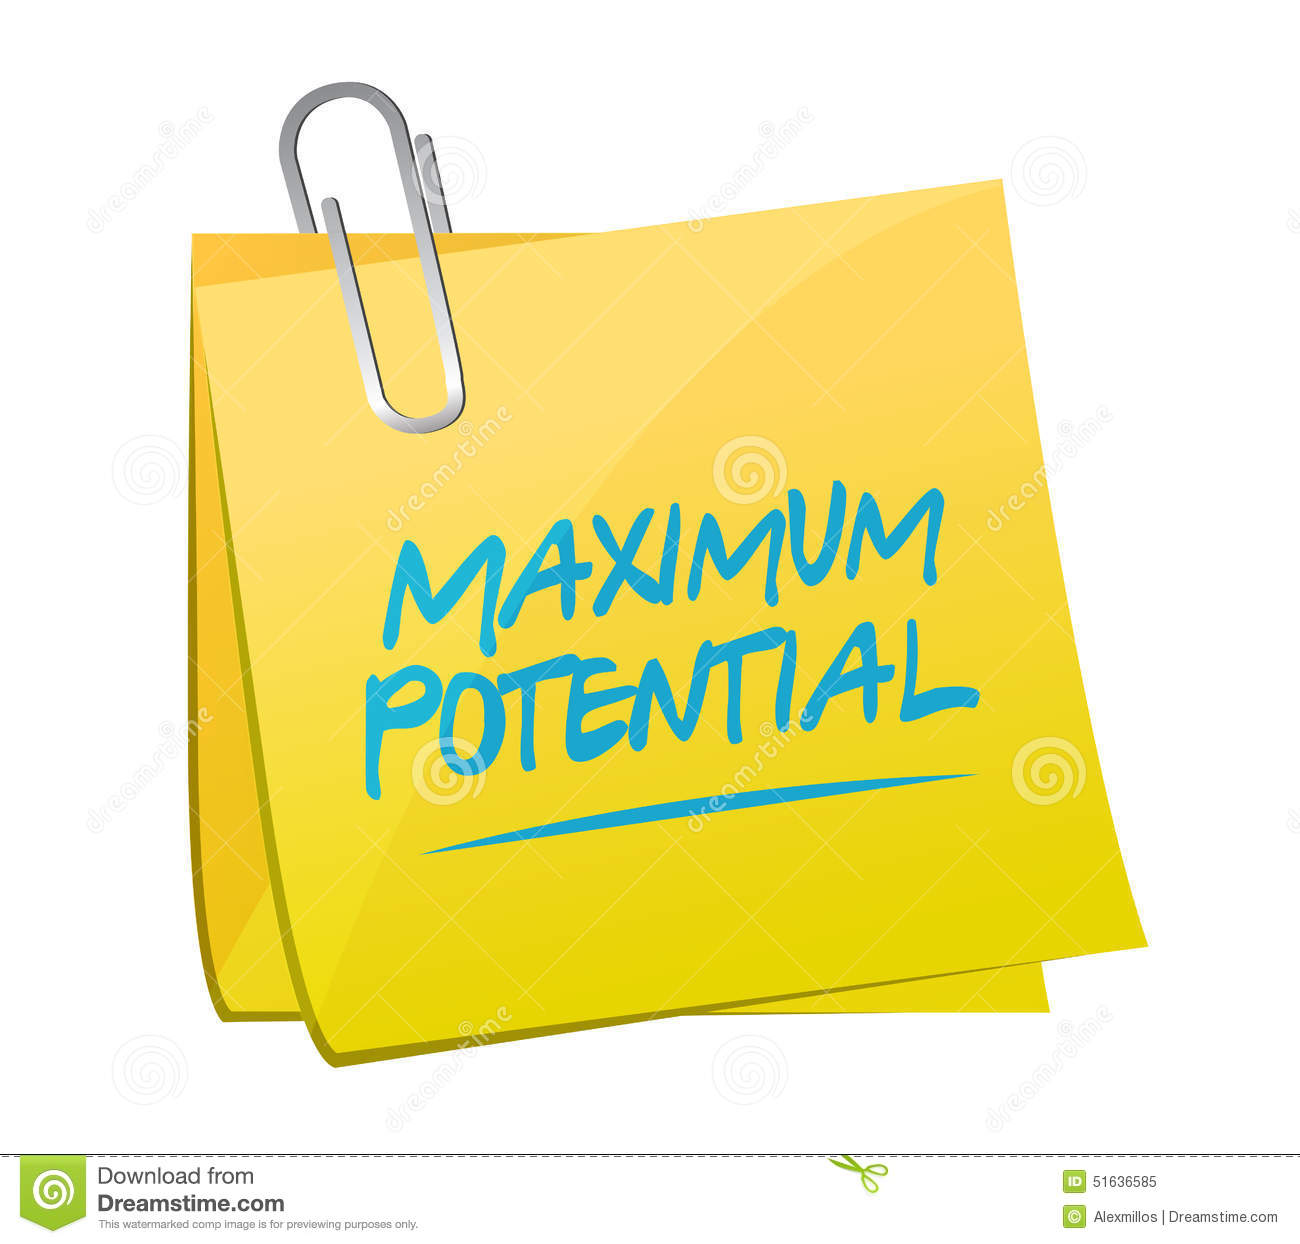 To Maximise The Potential Of: Maximum Potential Memo Sign Concept Illustration Stock